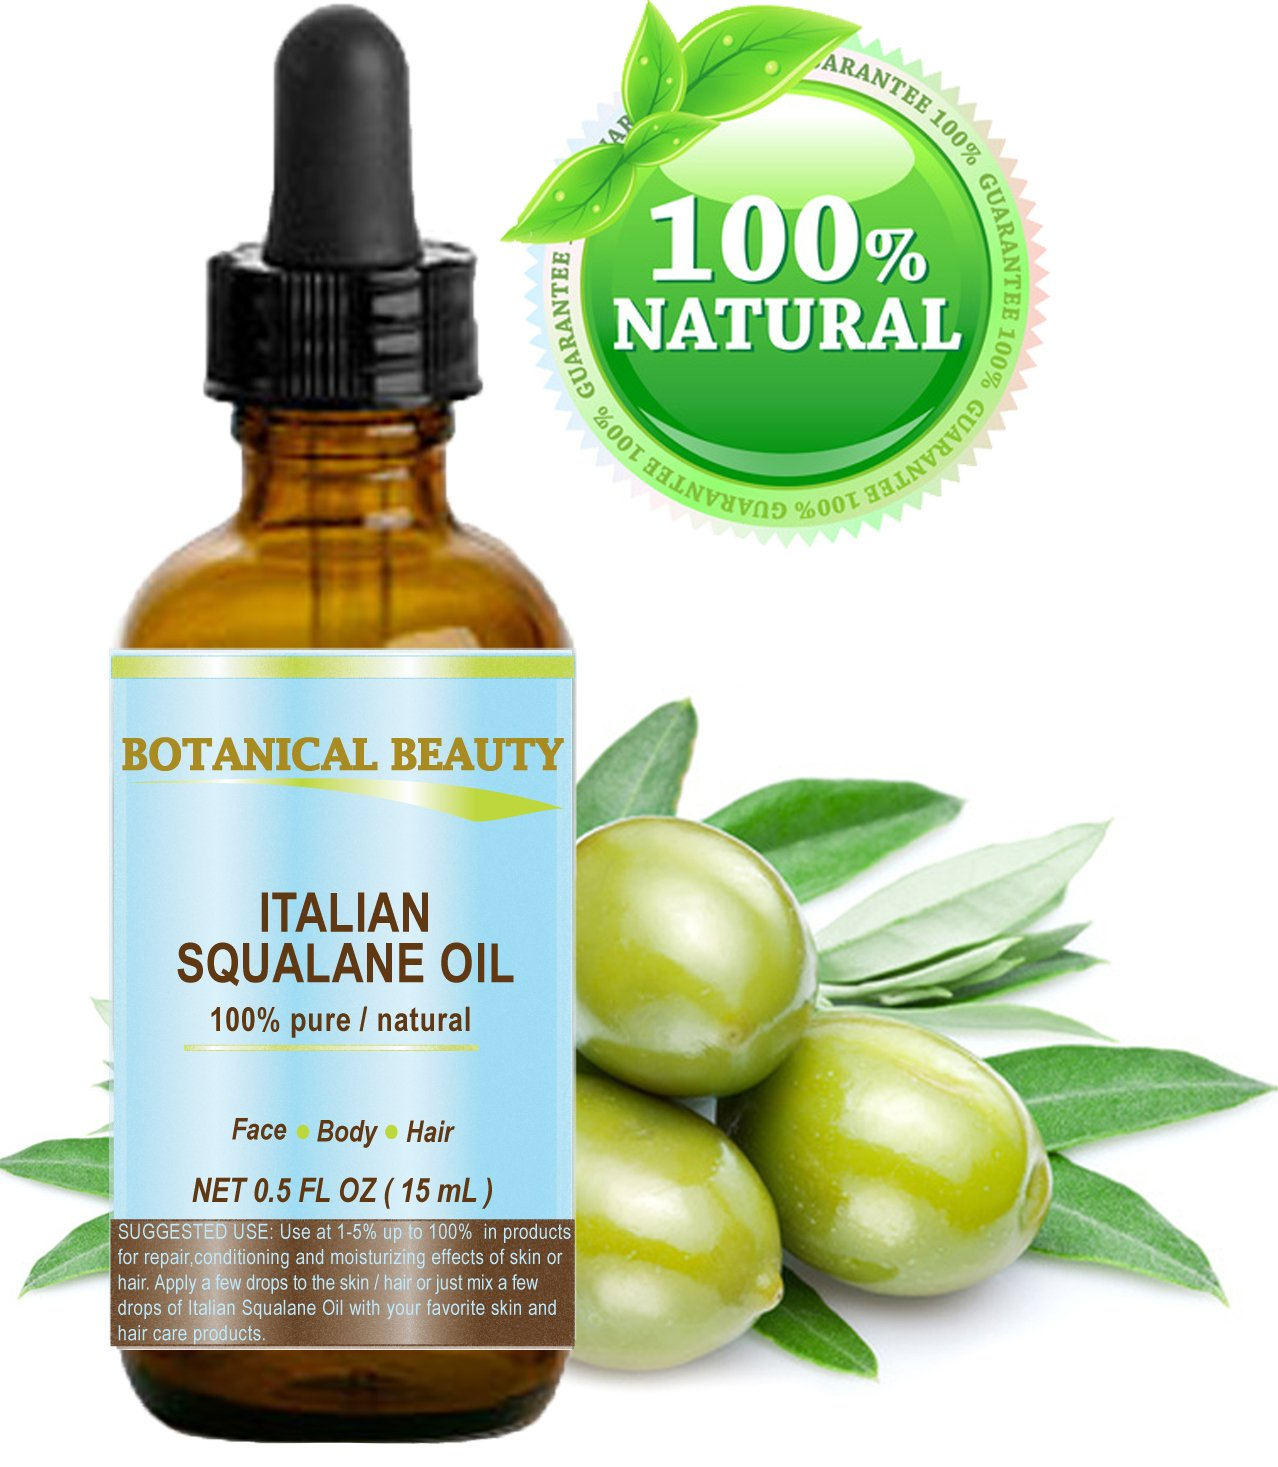 SQUALANE Italian. 100% Pure / Natural / Undiluted Oil. 100% Ultra-Pure Moisturizer for Face , Body & Hair. Reliable 24/7 skincare protection. 0.5 fl.oz- 15 ml. by Botanical Beauty.